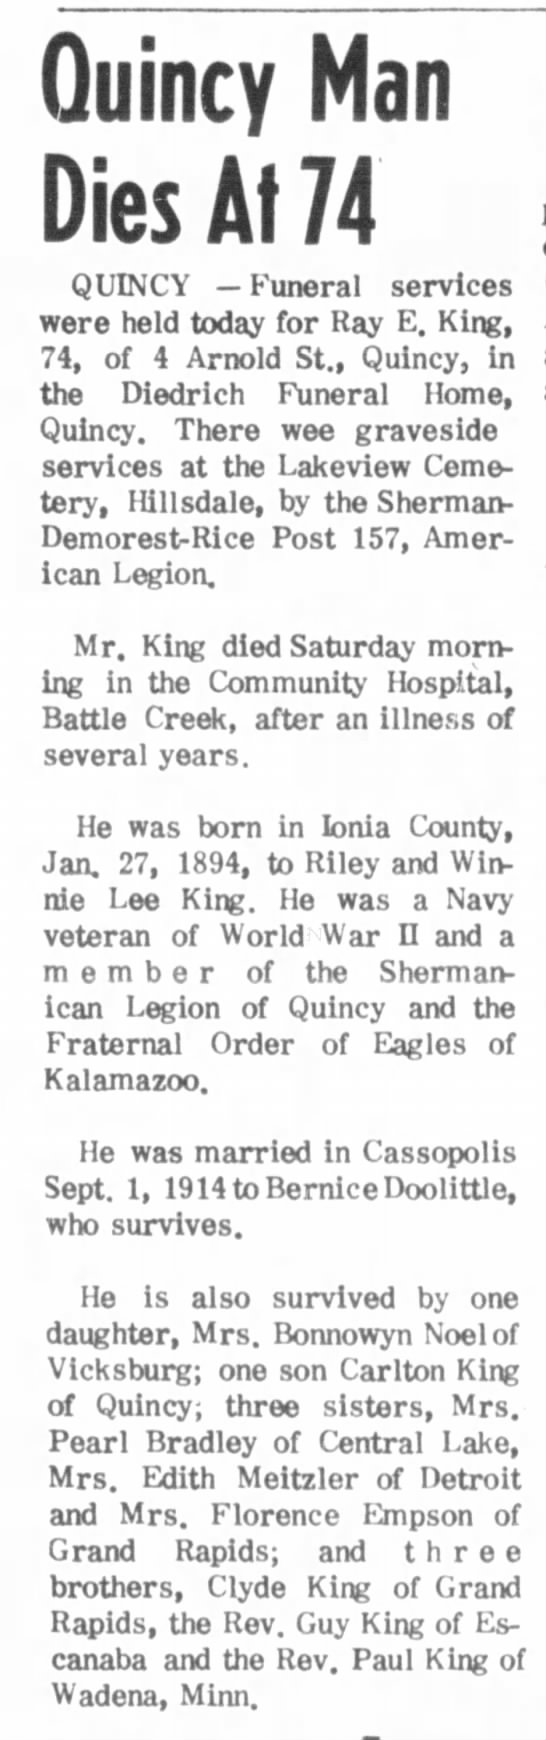 Death of Ray King, brother of Edith Meitzler (Fred's wife) - Oct 1968